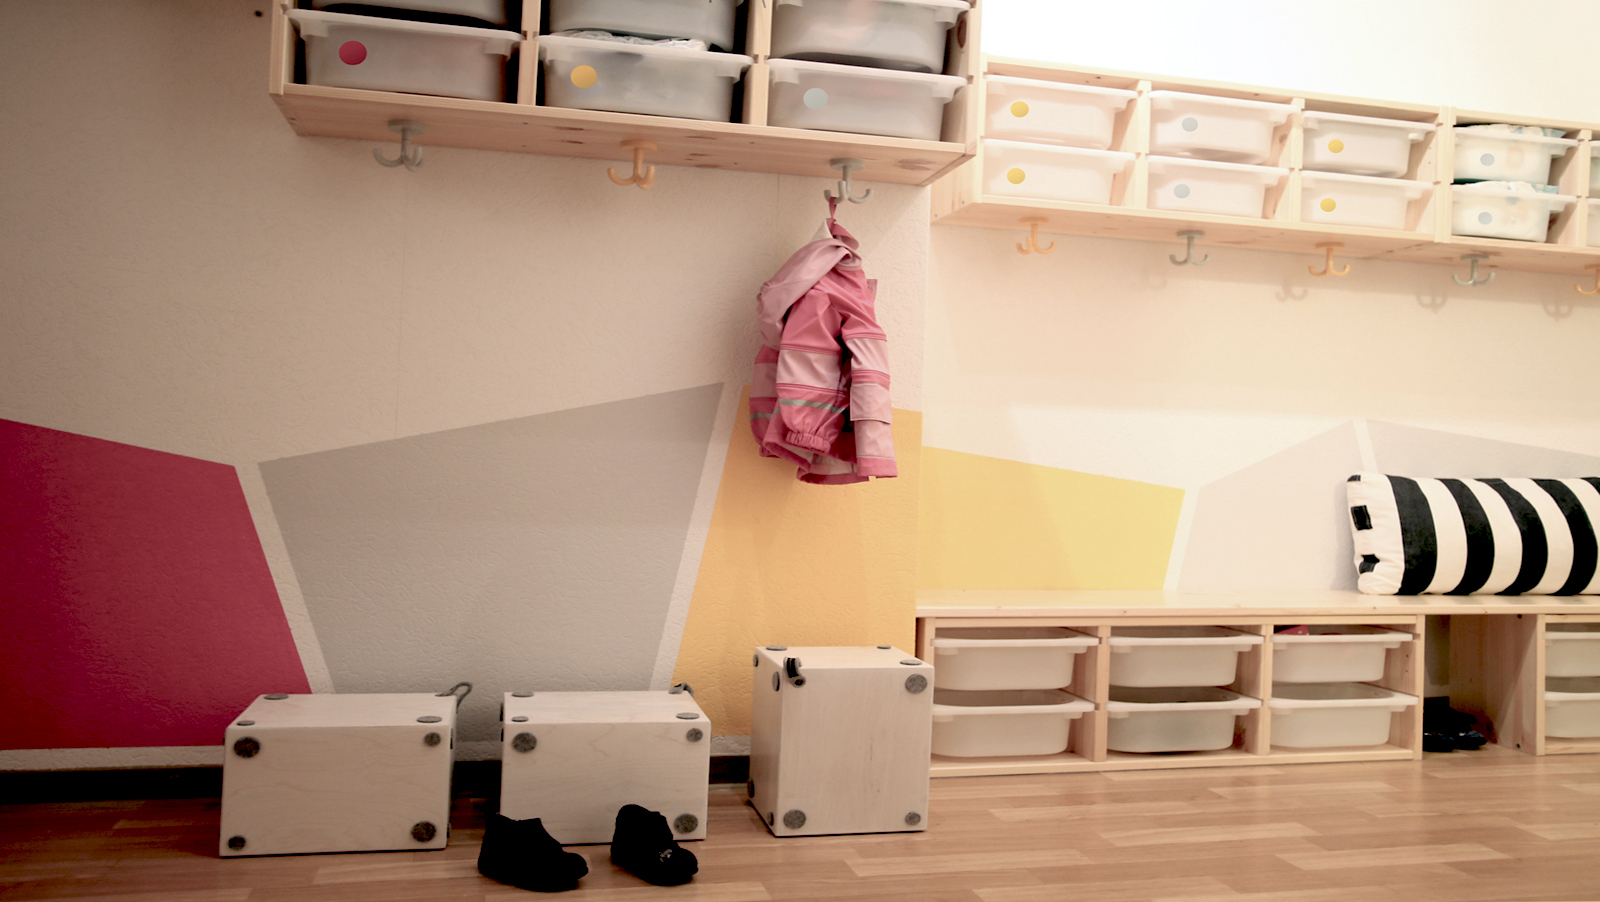 raumgestaltung kinderzimmer kindergarten stuttgart. Black Bedroom Furniture Sets. Home Design Ideas